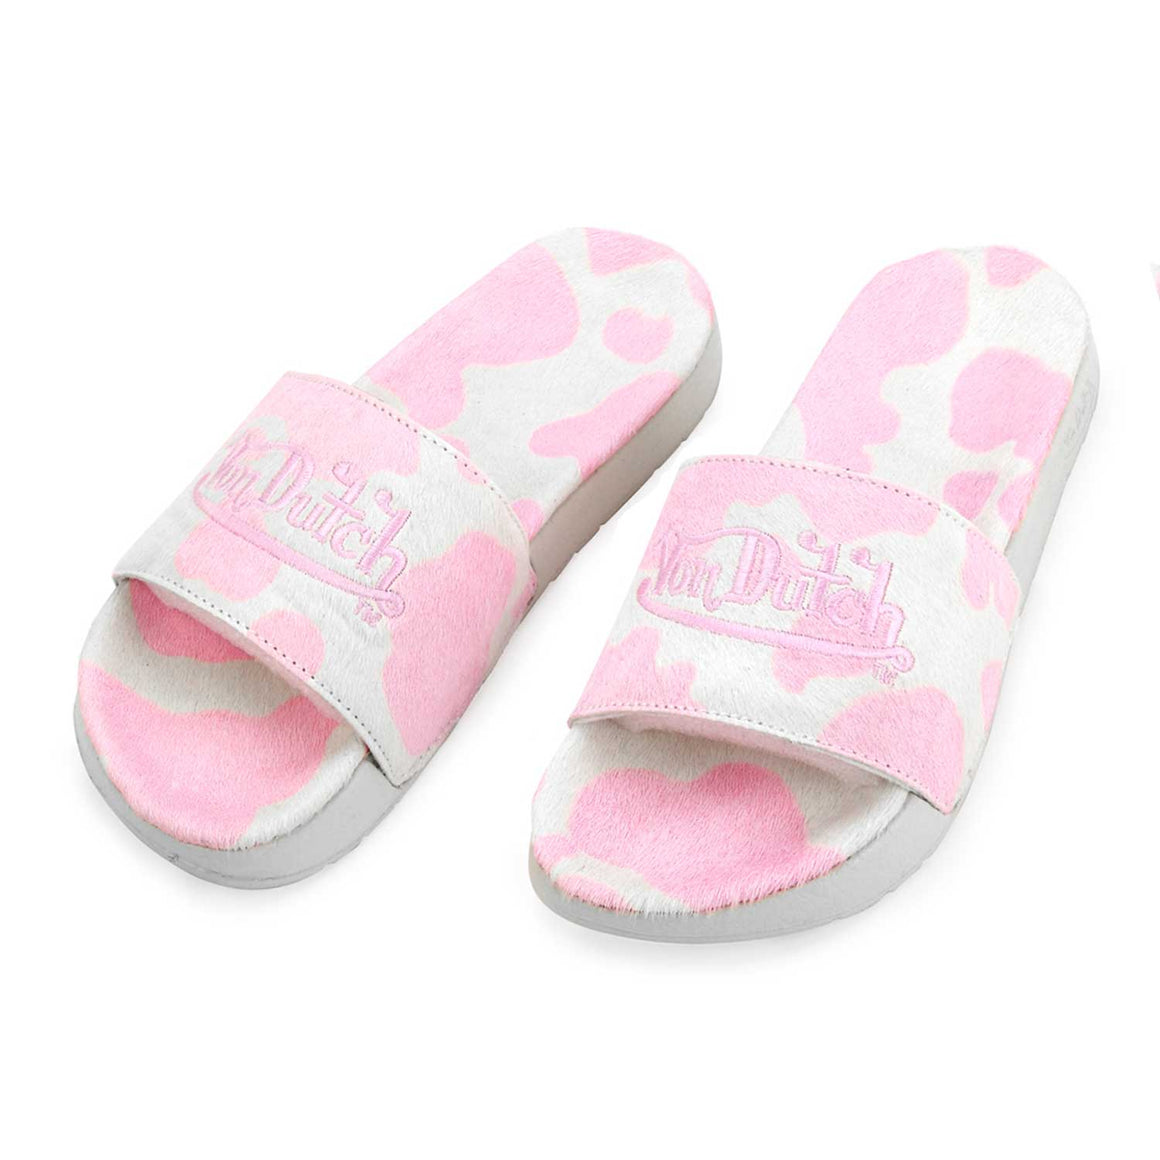 Pink & White Cow Print Pony Hair Women's Slides